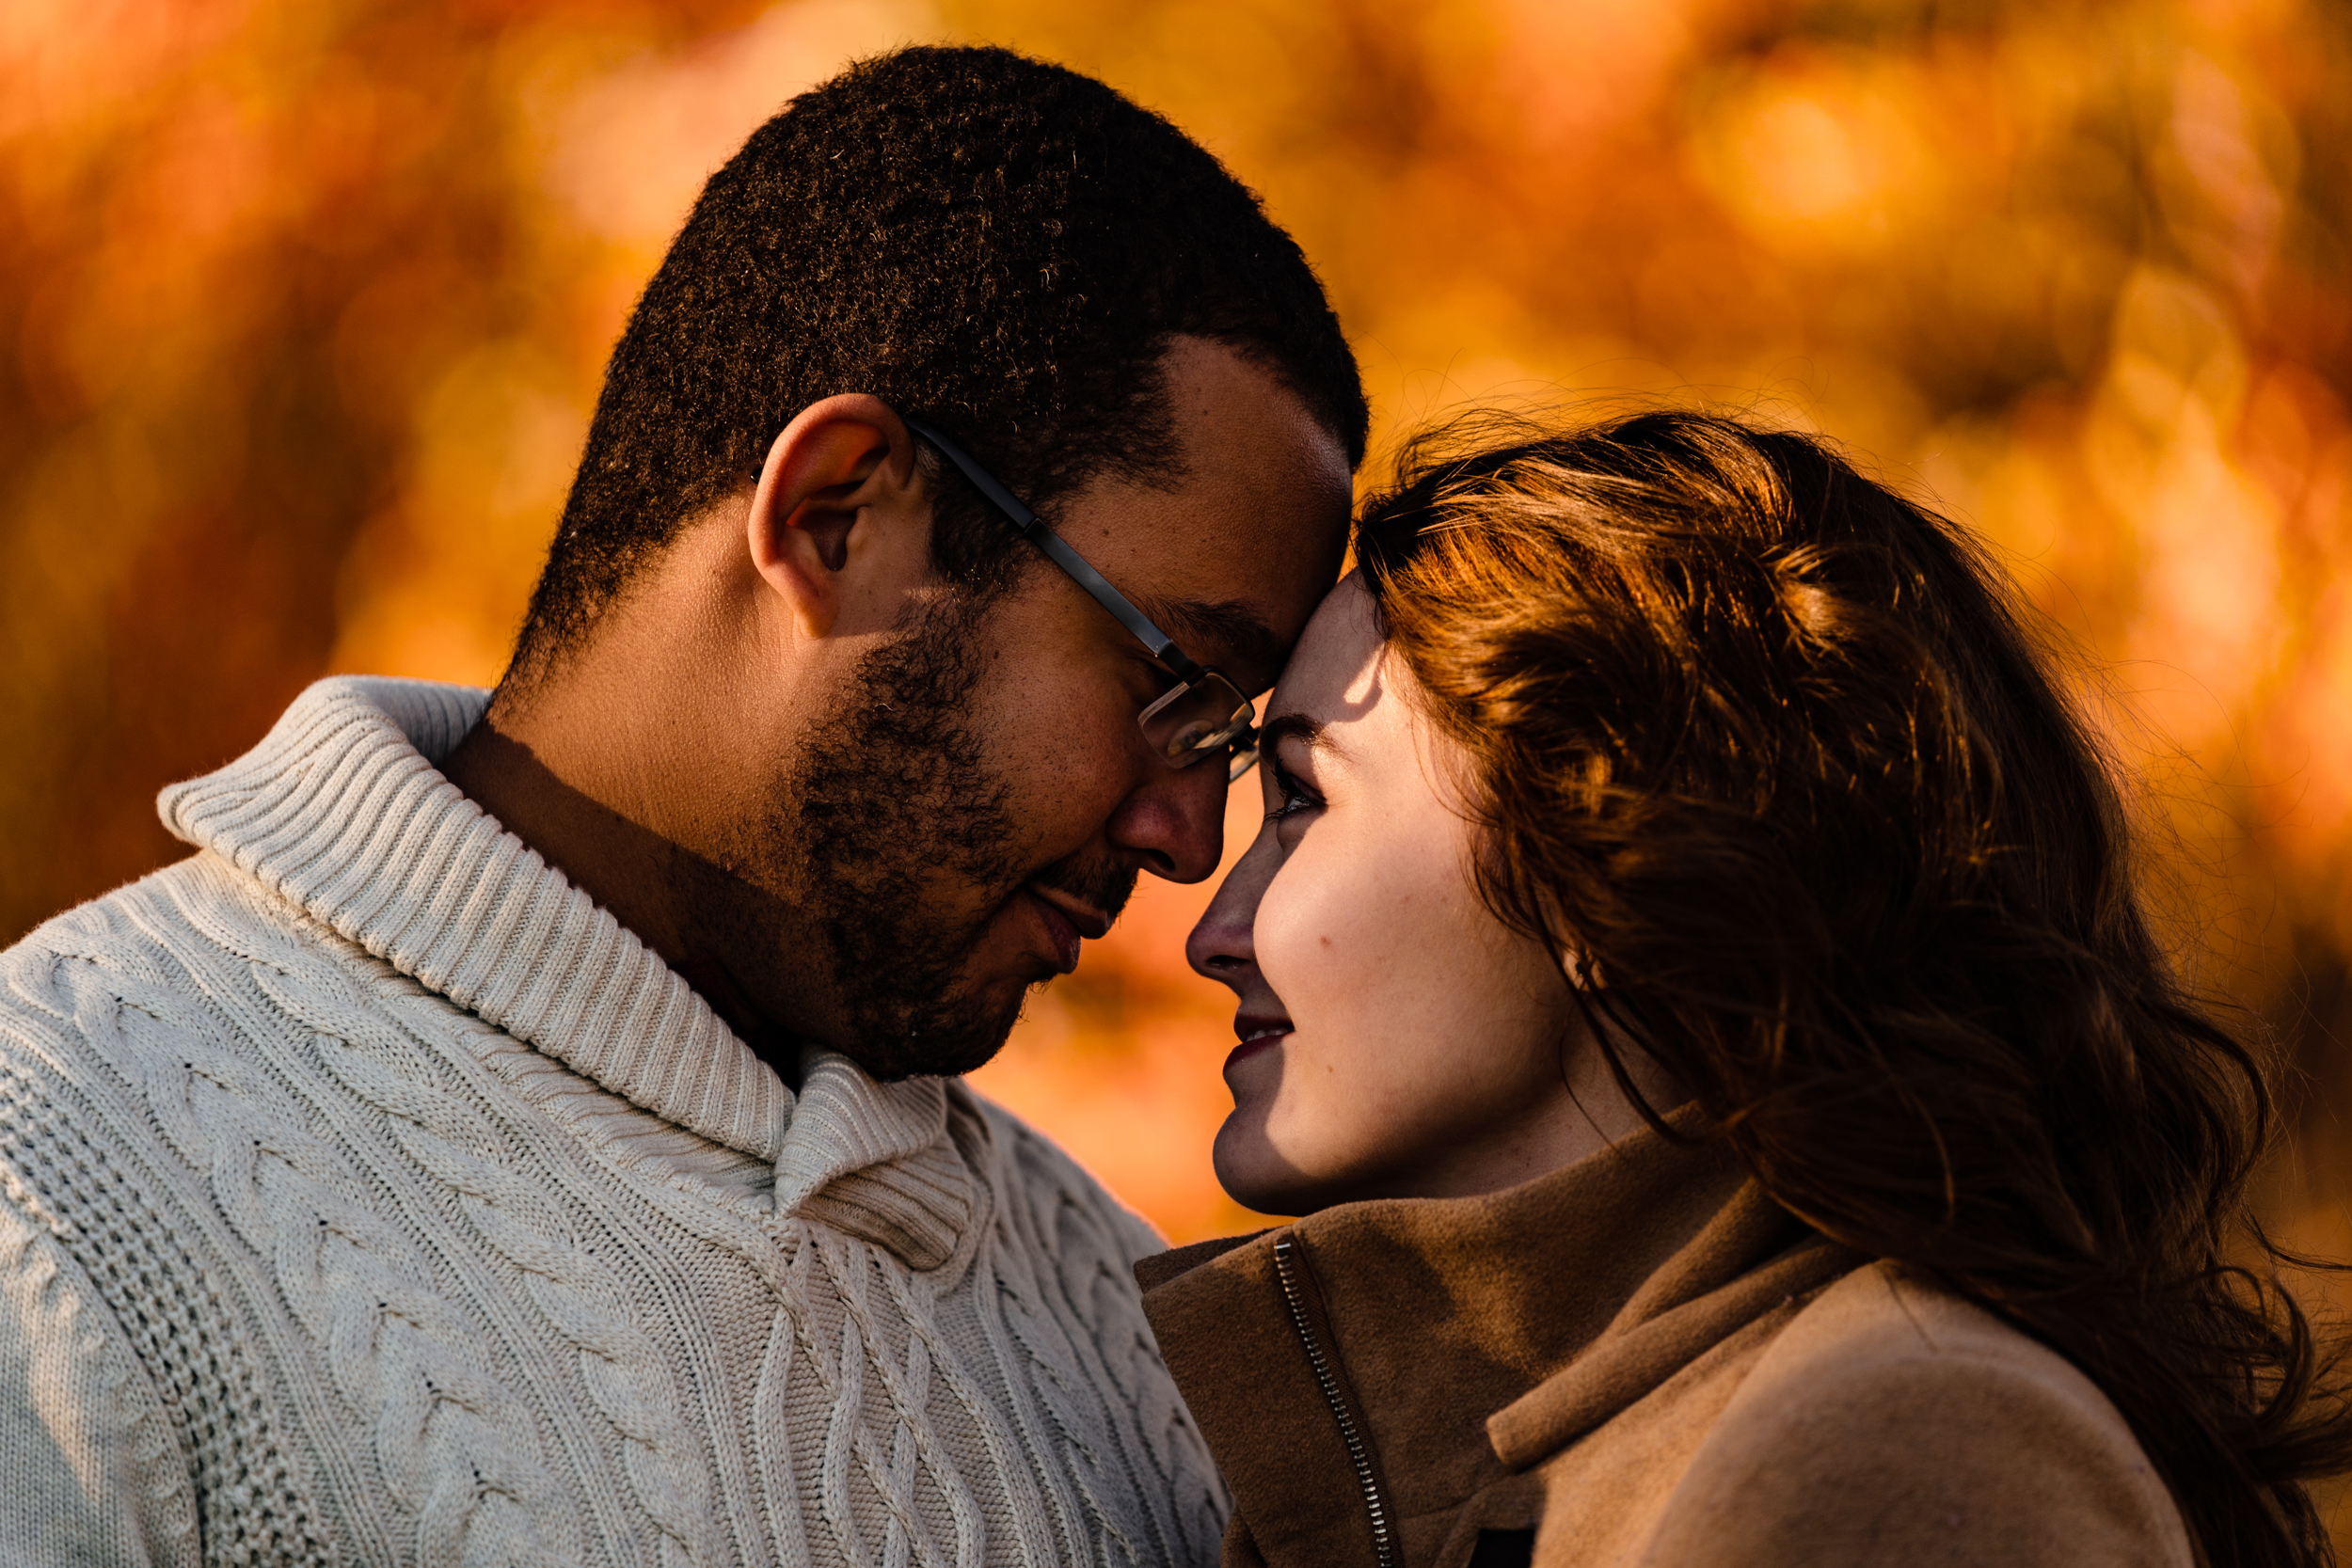 Wedding-halifax-engagement-nova-scotia-ottawa-ontario-pointpleasantpark-Fall-Autumn (52 of 53).jpg